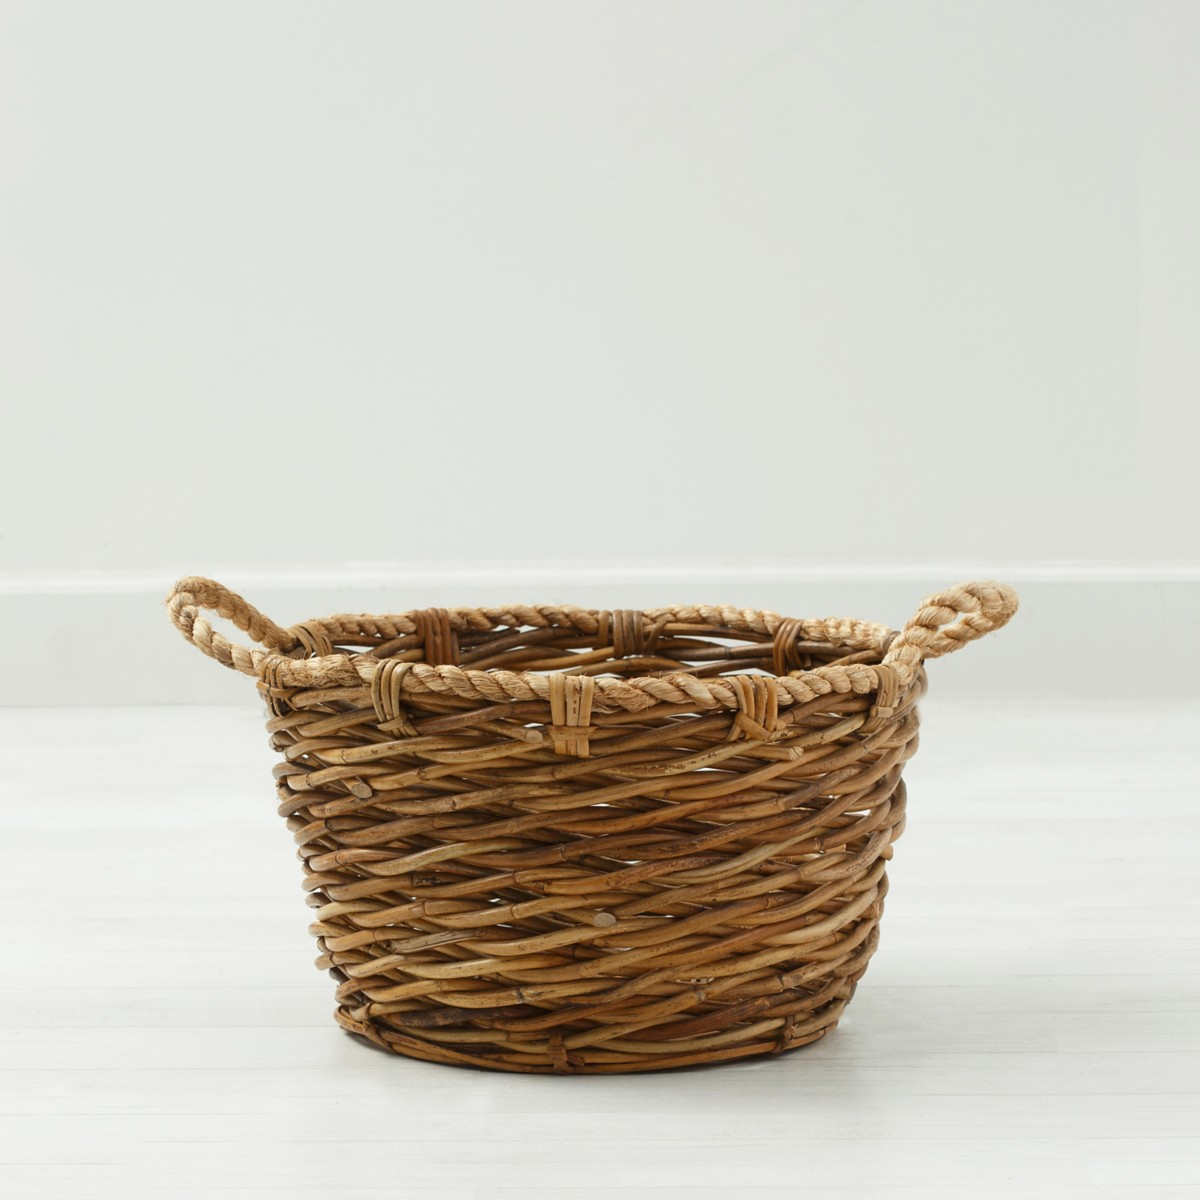 group furnishings and decor type baskets bins amp totes